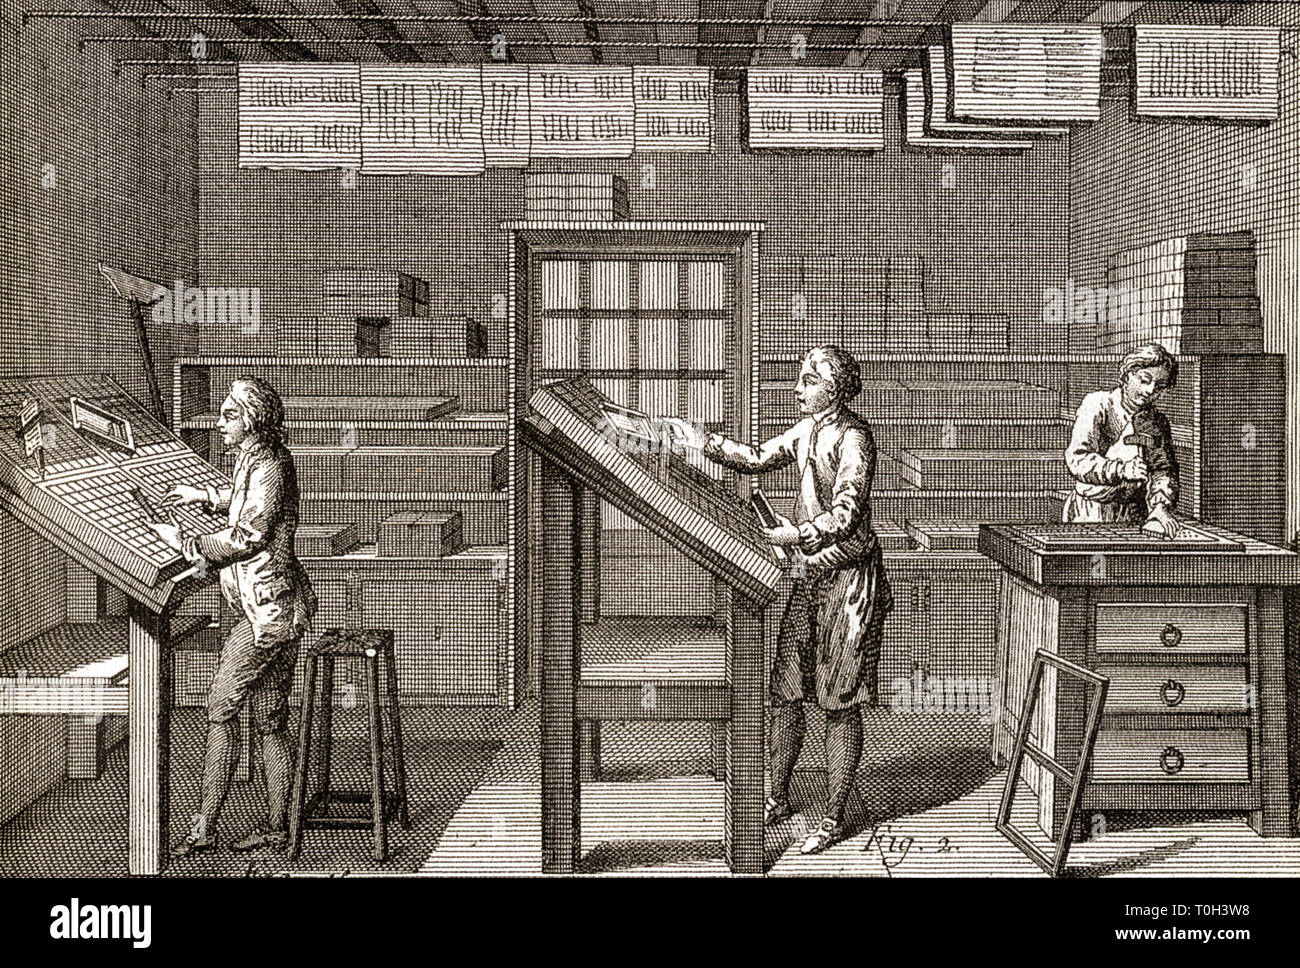 18th century printing press from the 'Encyclopédie' of D'Alambert and Diderot - Stock Image